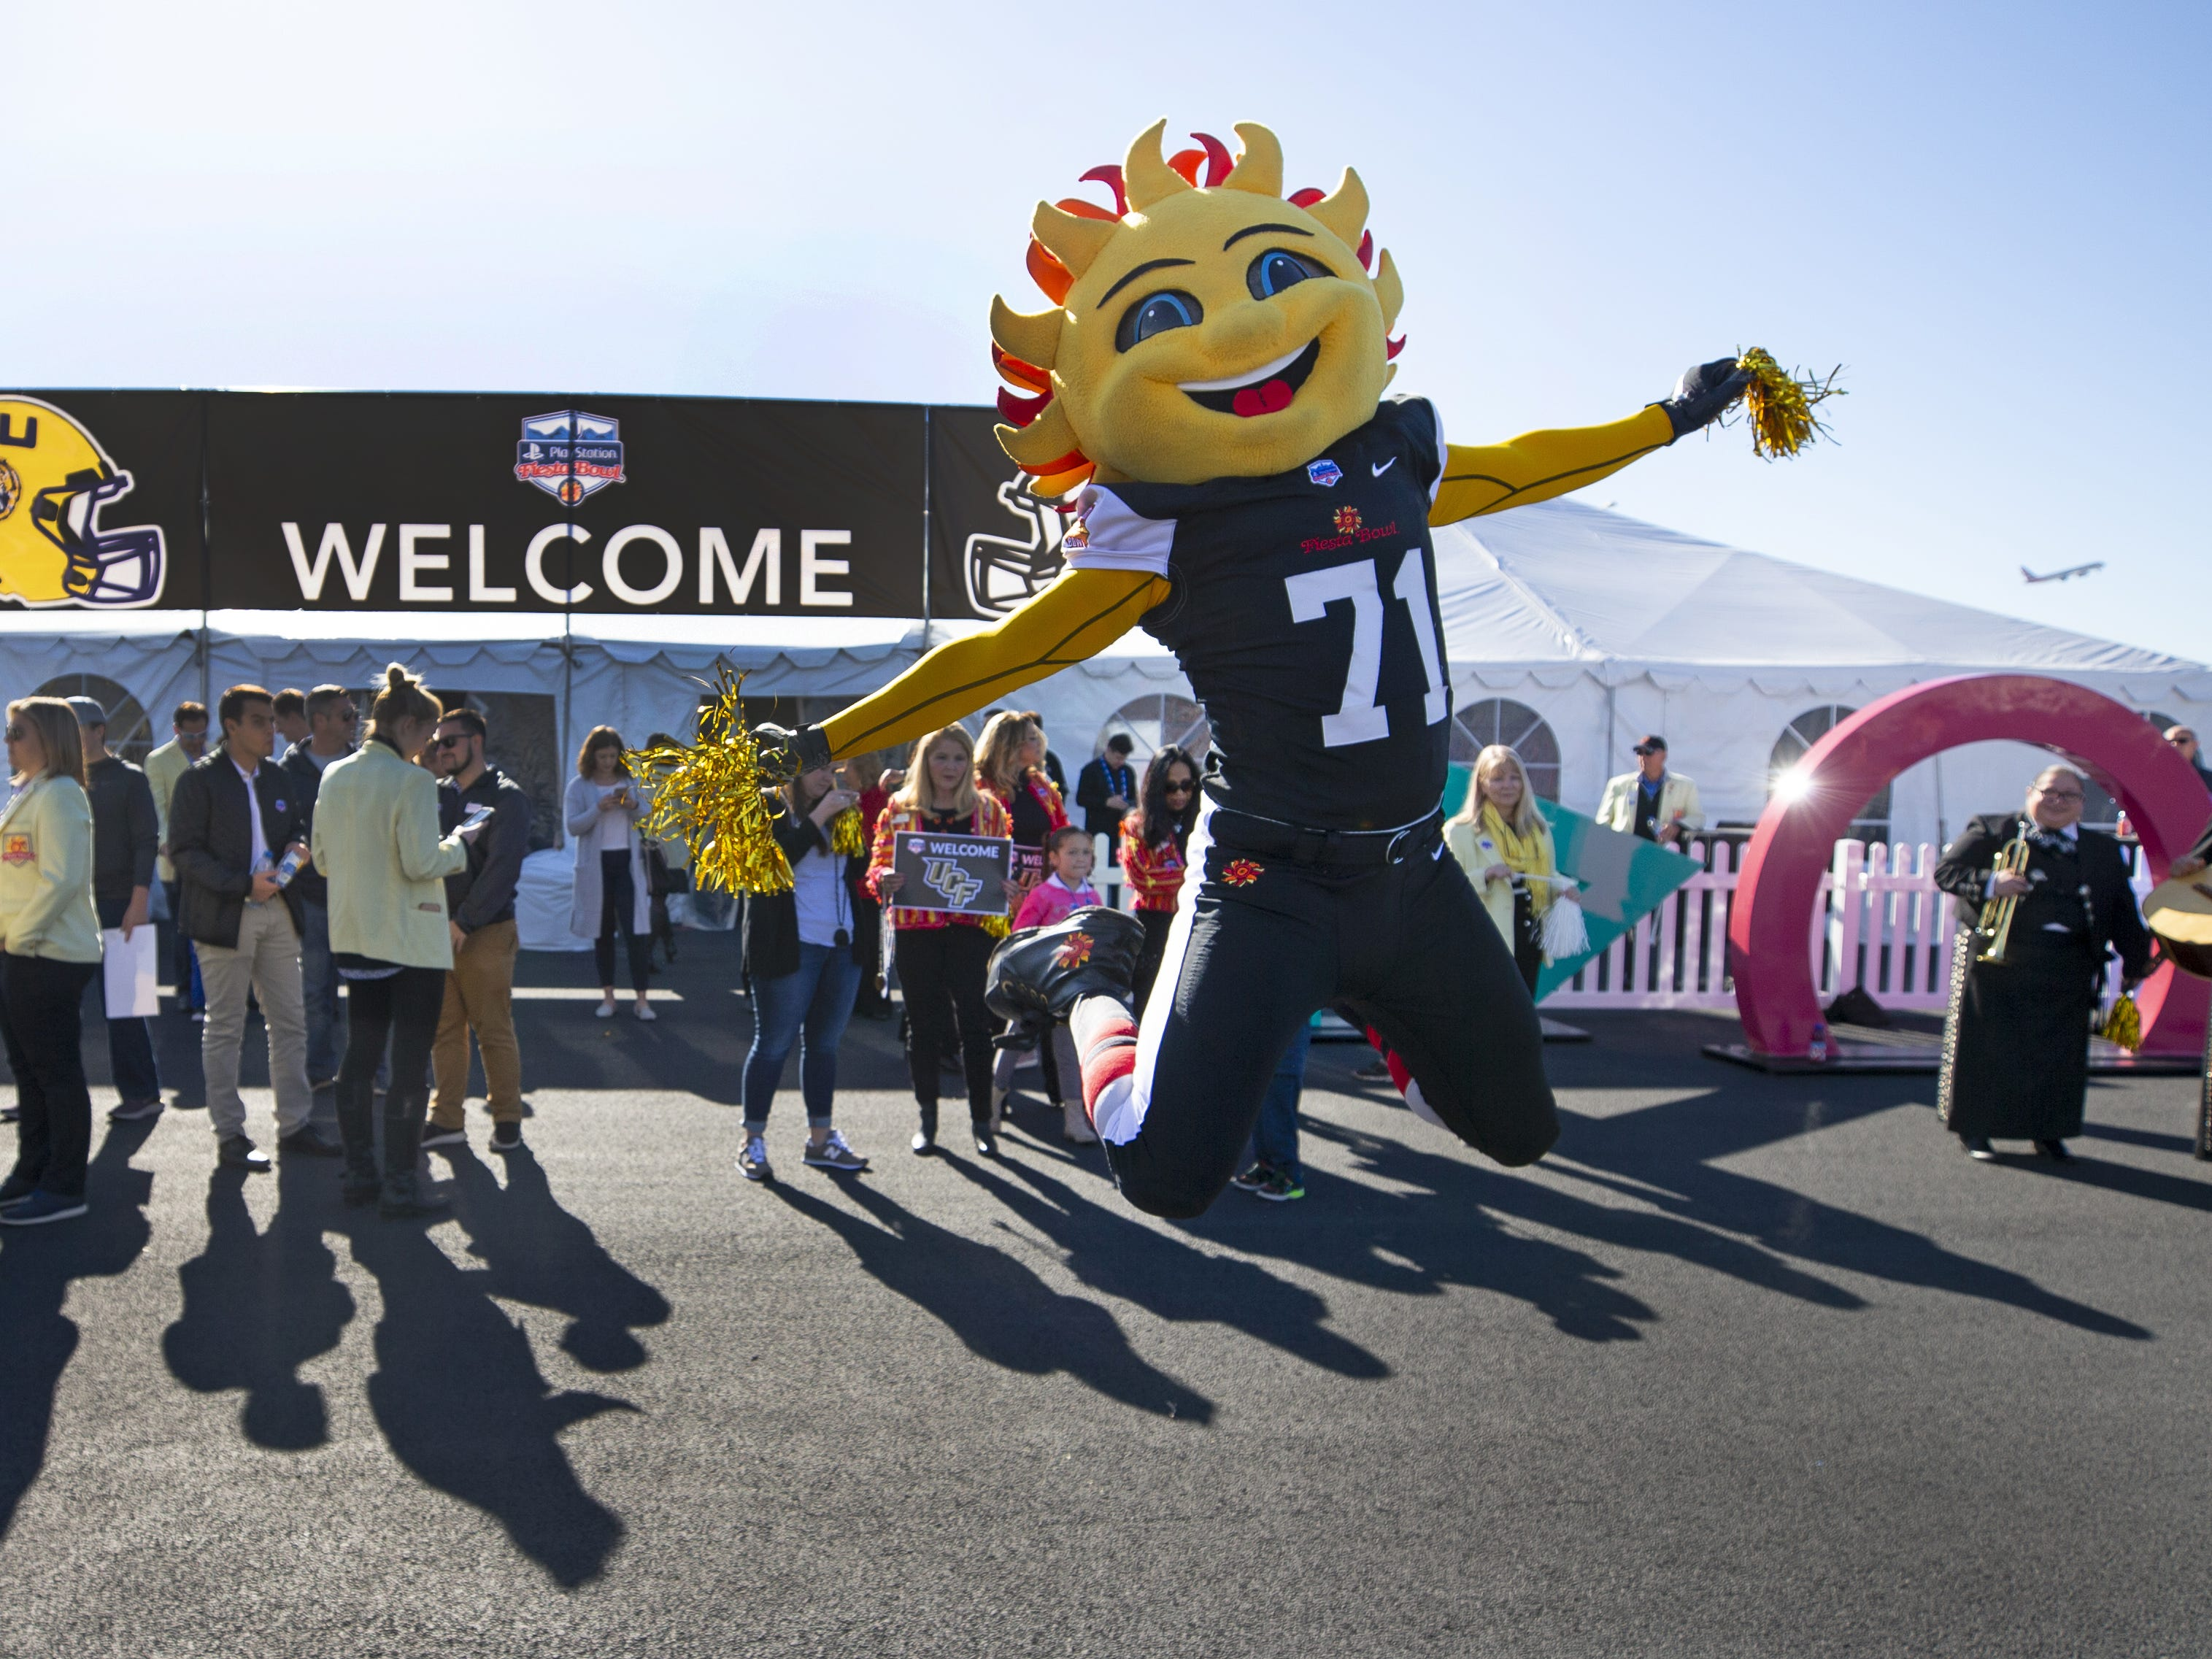 Fiesta Bowl mascot, Spirit, prepares to greet Central Florida football team at Sky Harbor International Airport in Phoenix on December 27. Central Florida will face LSU in the Fiesta Bowl on New Year's Day.